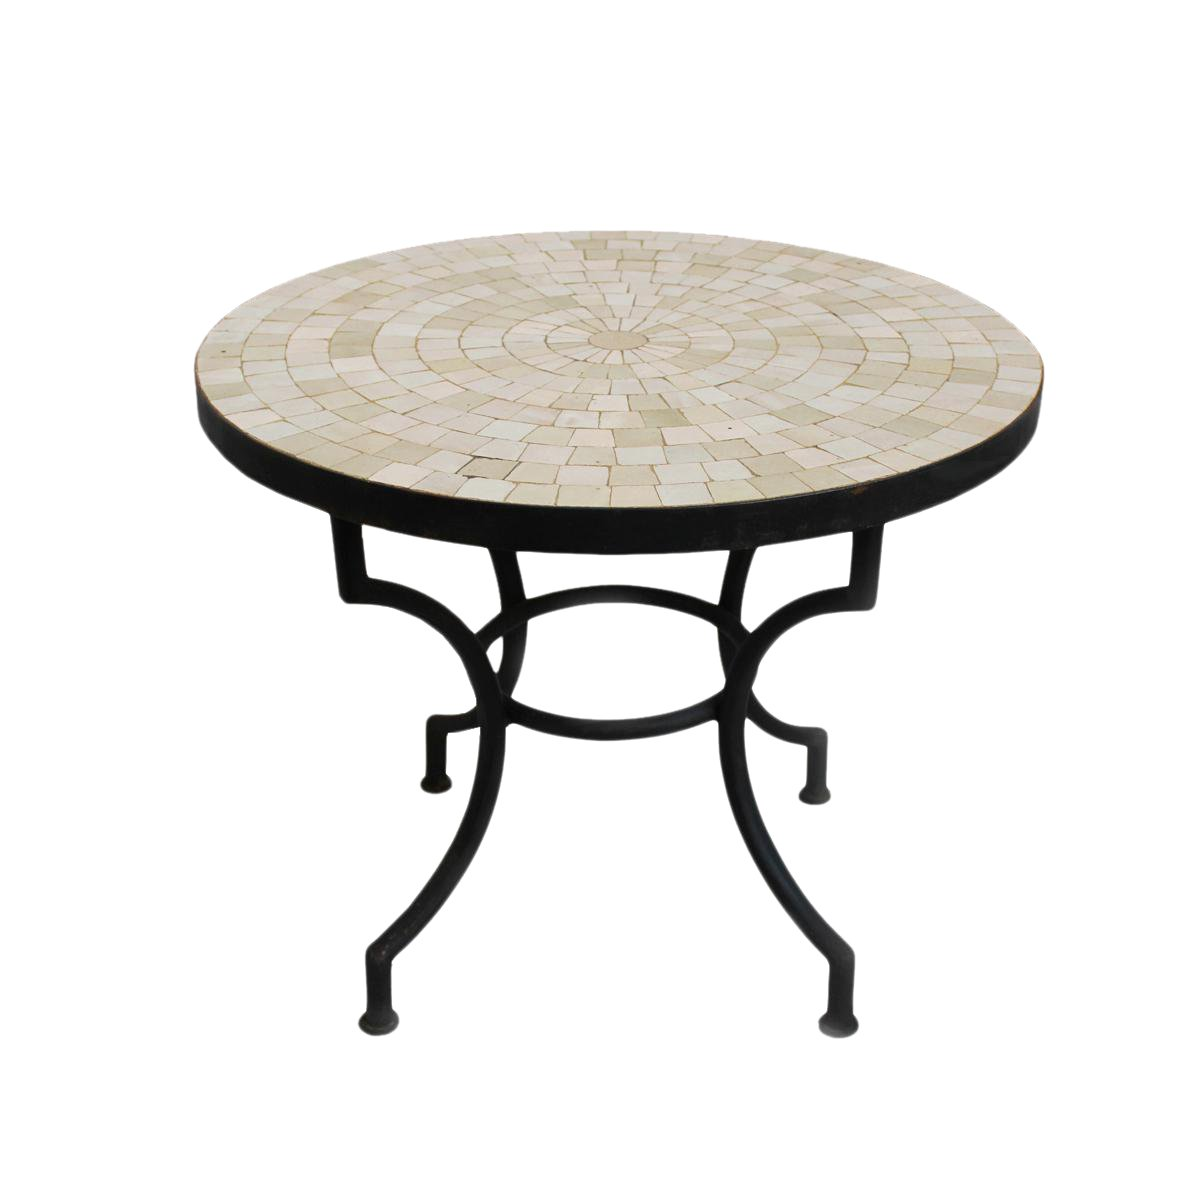 traditional round mosaic tile side table chairish outdoor accent mirror small couches for spaces laminate flooring doorway transition living room mirrored nightstand home goods